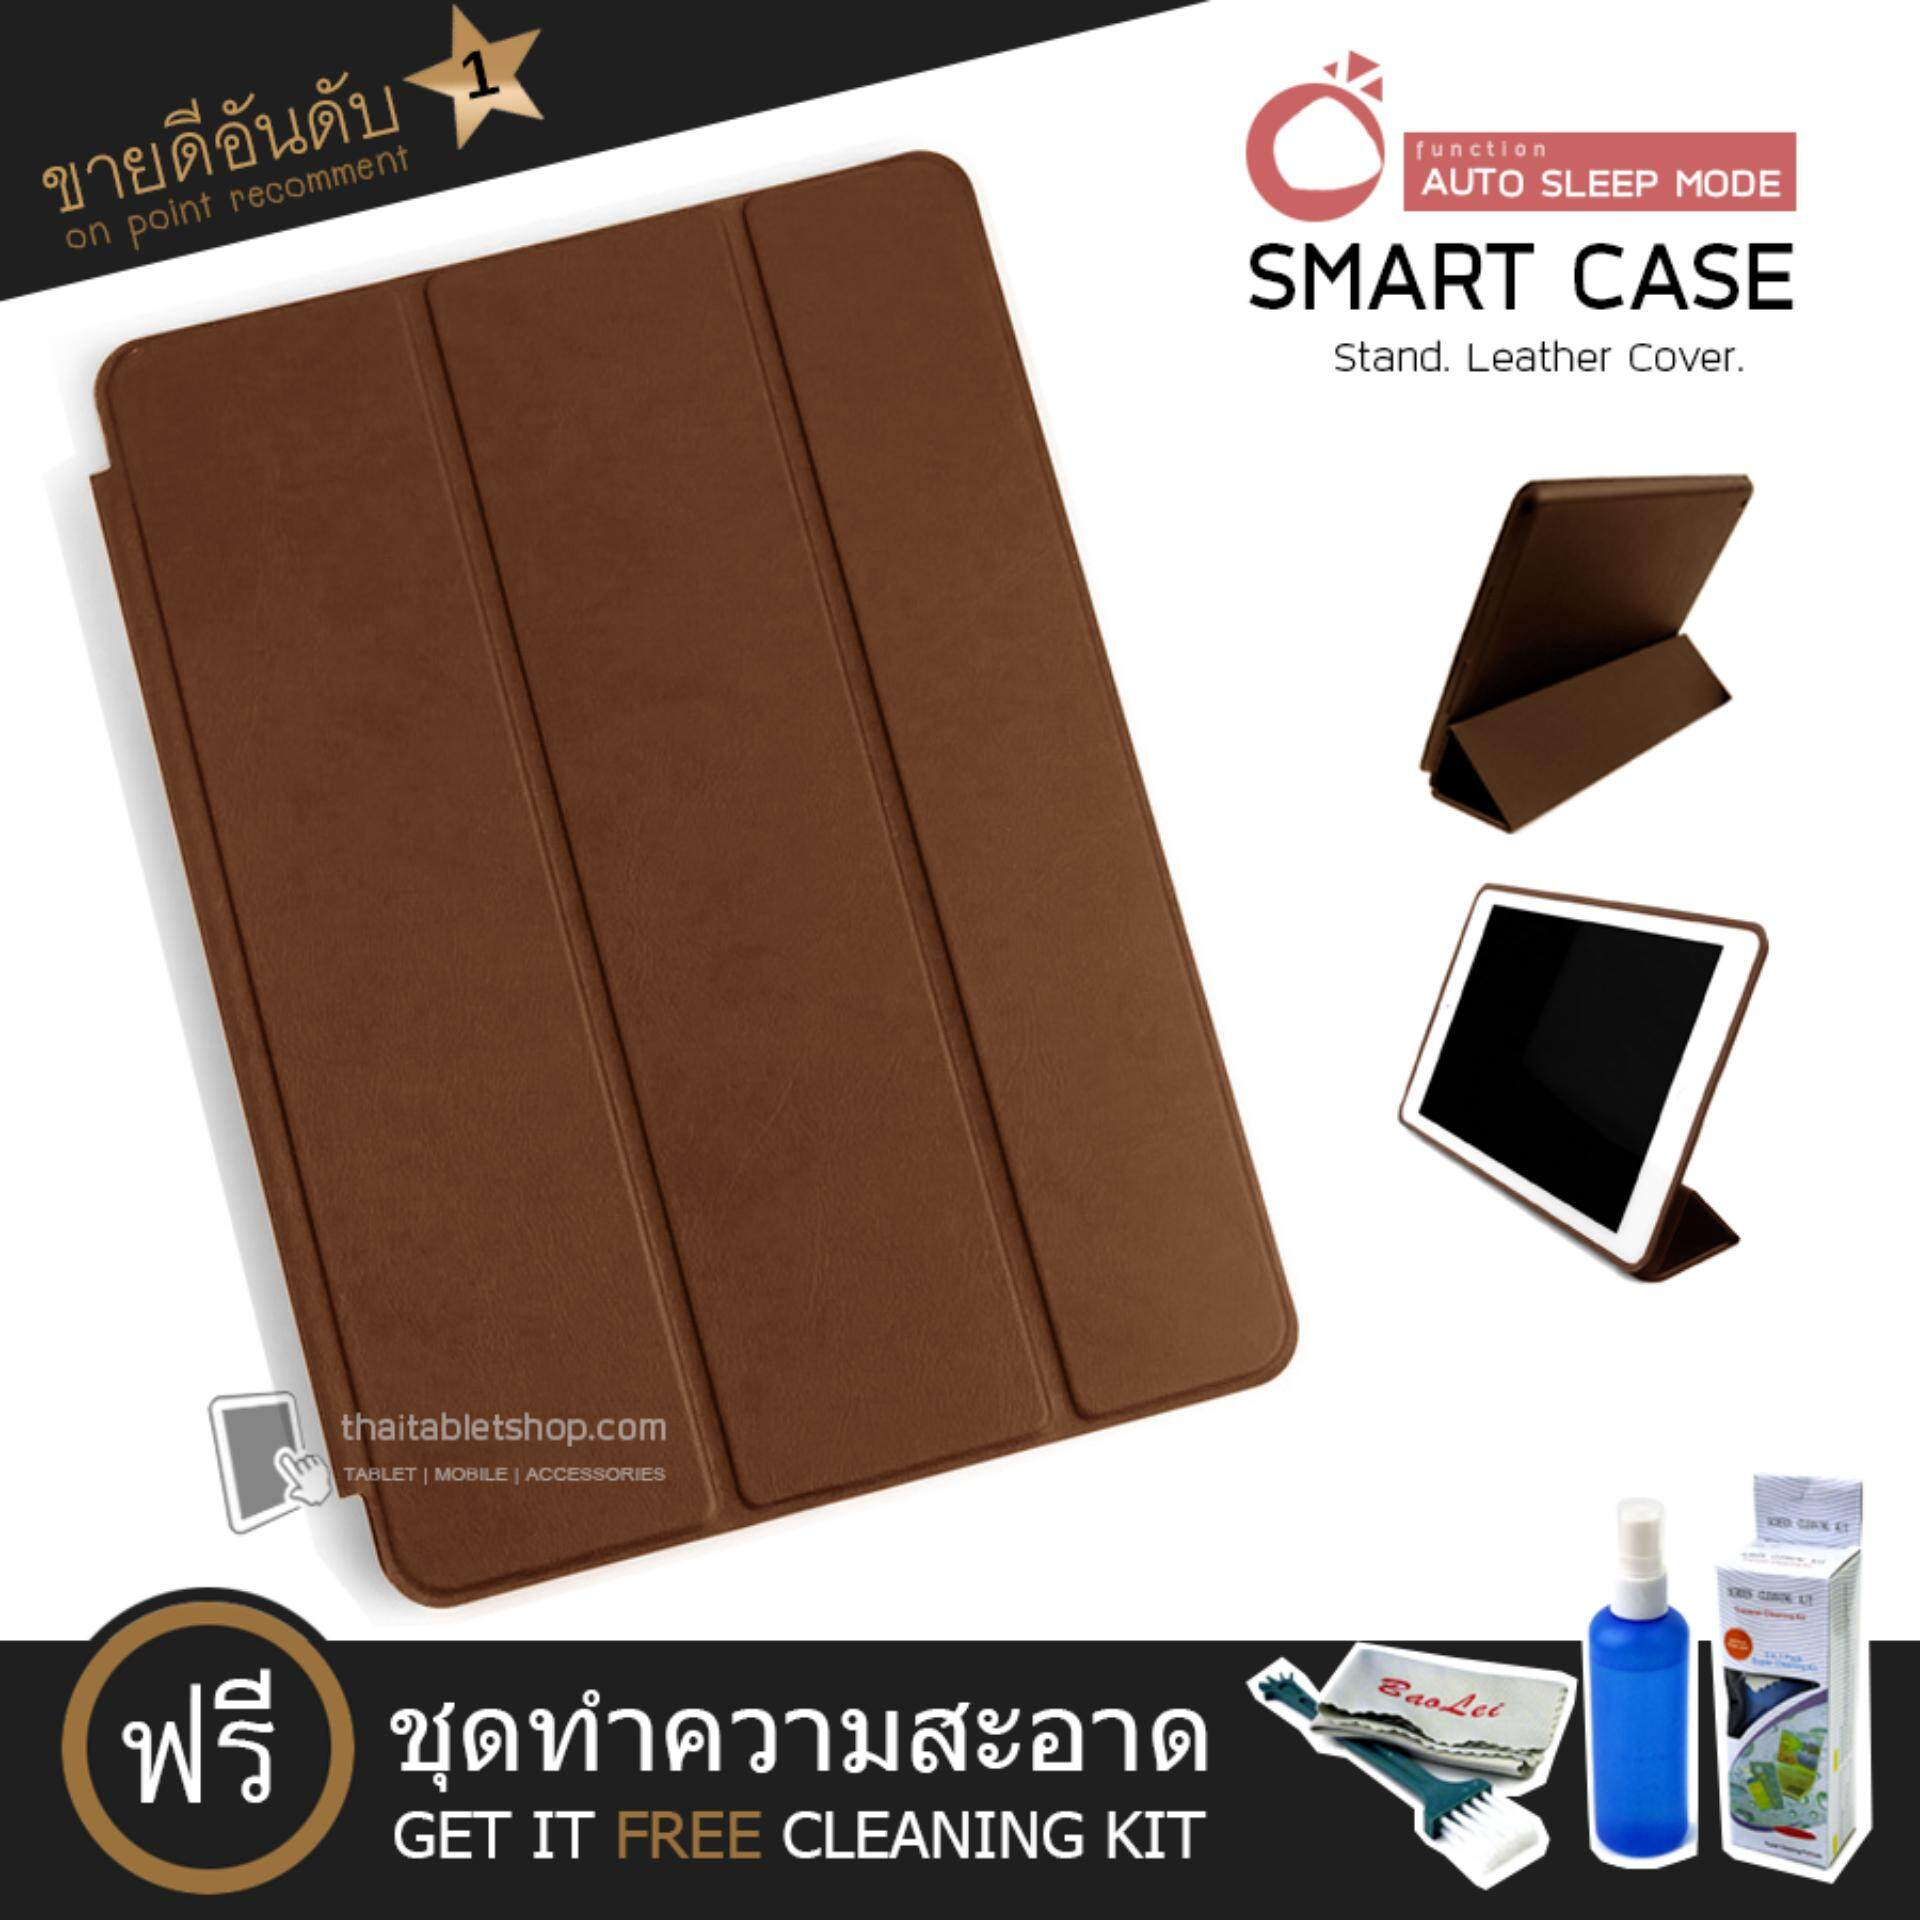 BestSeller Smart Case เคส iPad 9.7 2017 เคส iPad 9.7 2018